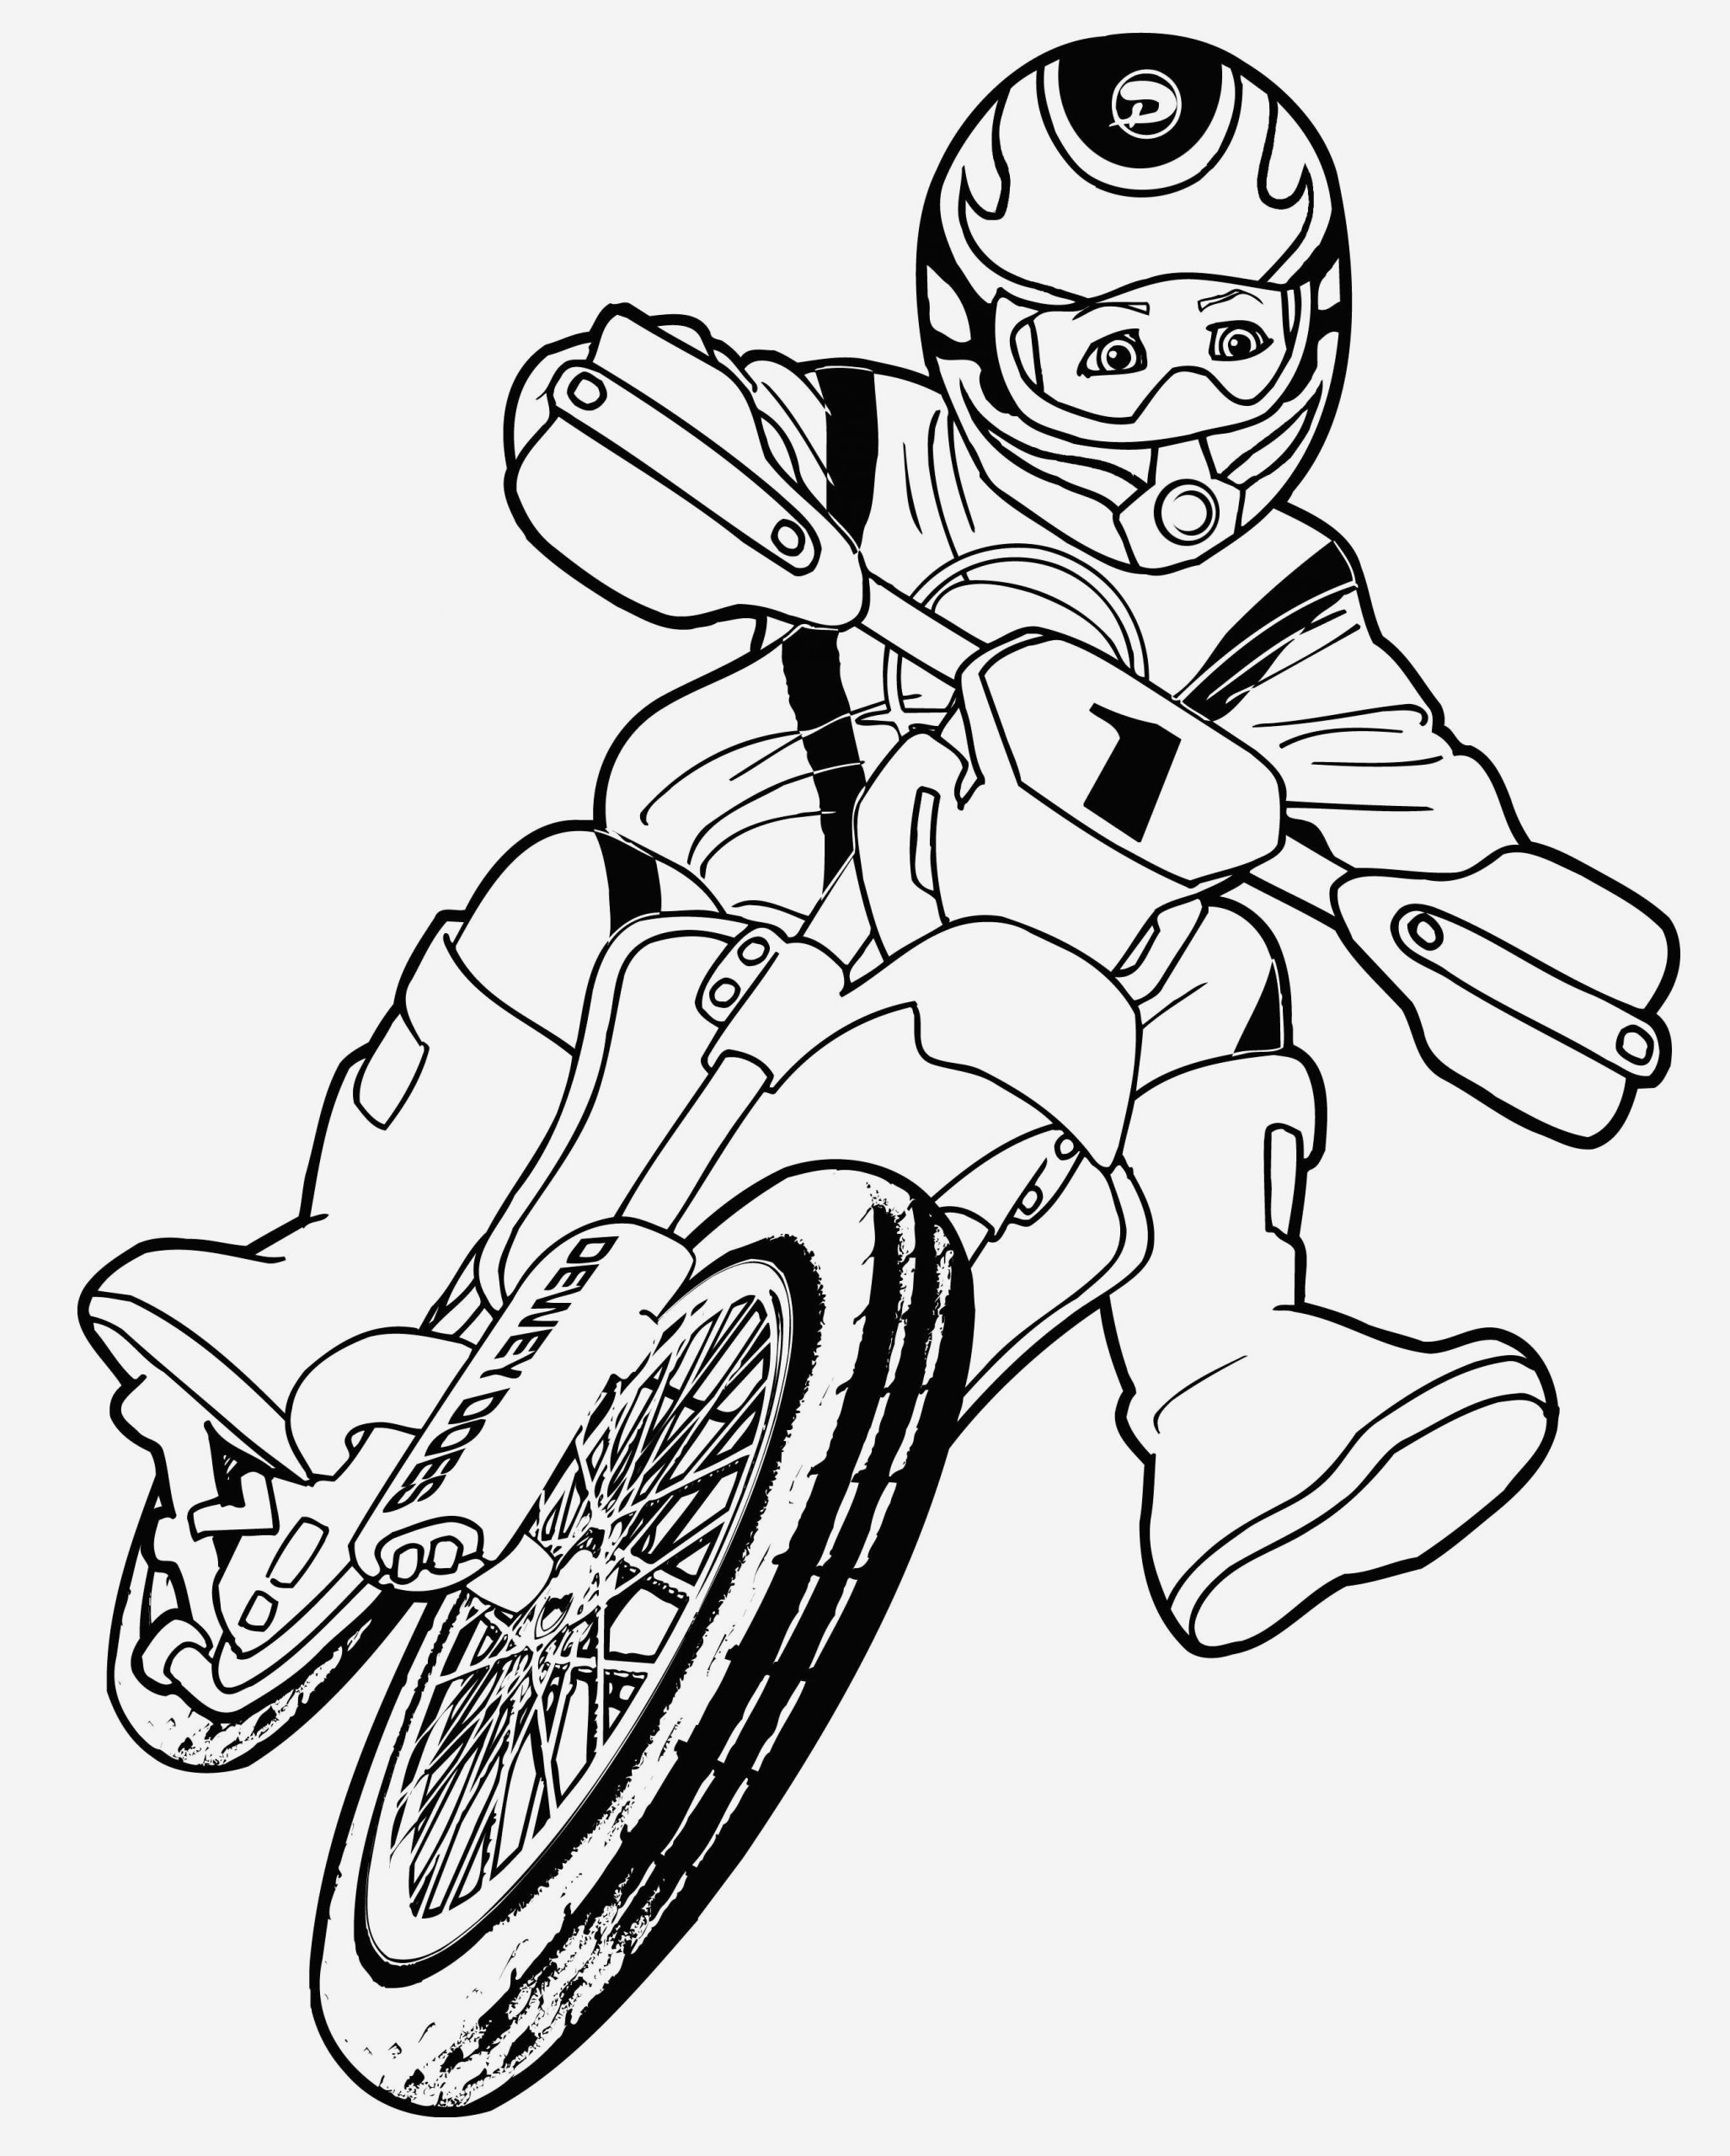 Coloriage Moto Cross à Imprimer Gratuit Beautiful Coloring Page Of Coloriage Moto Cross à Imprimer Gratuit